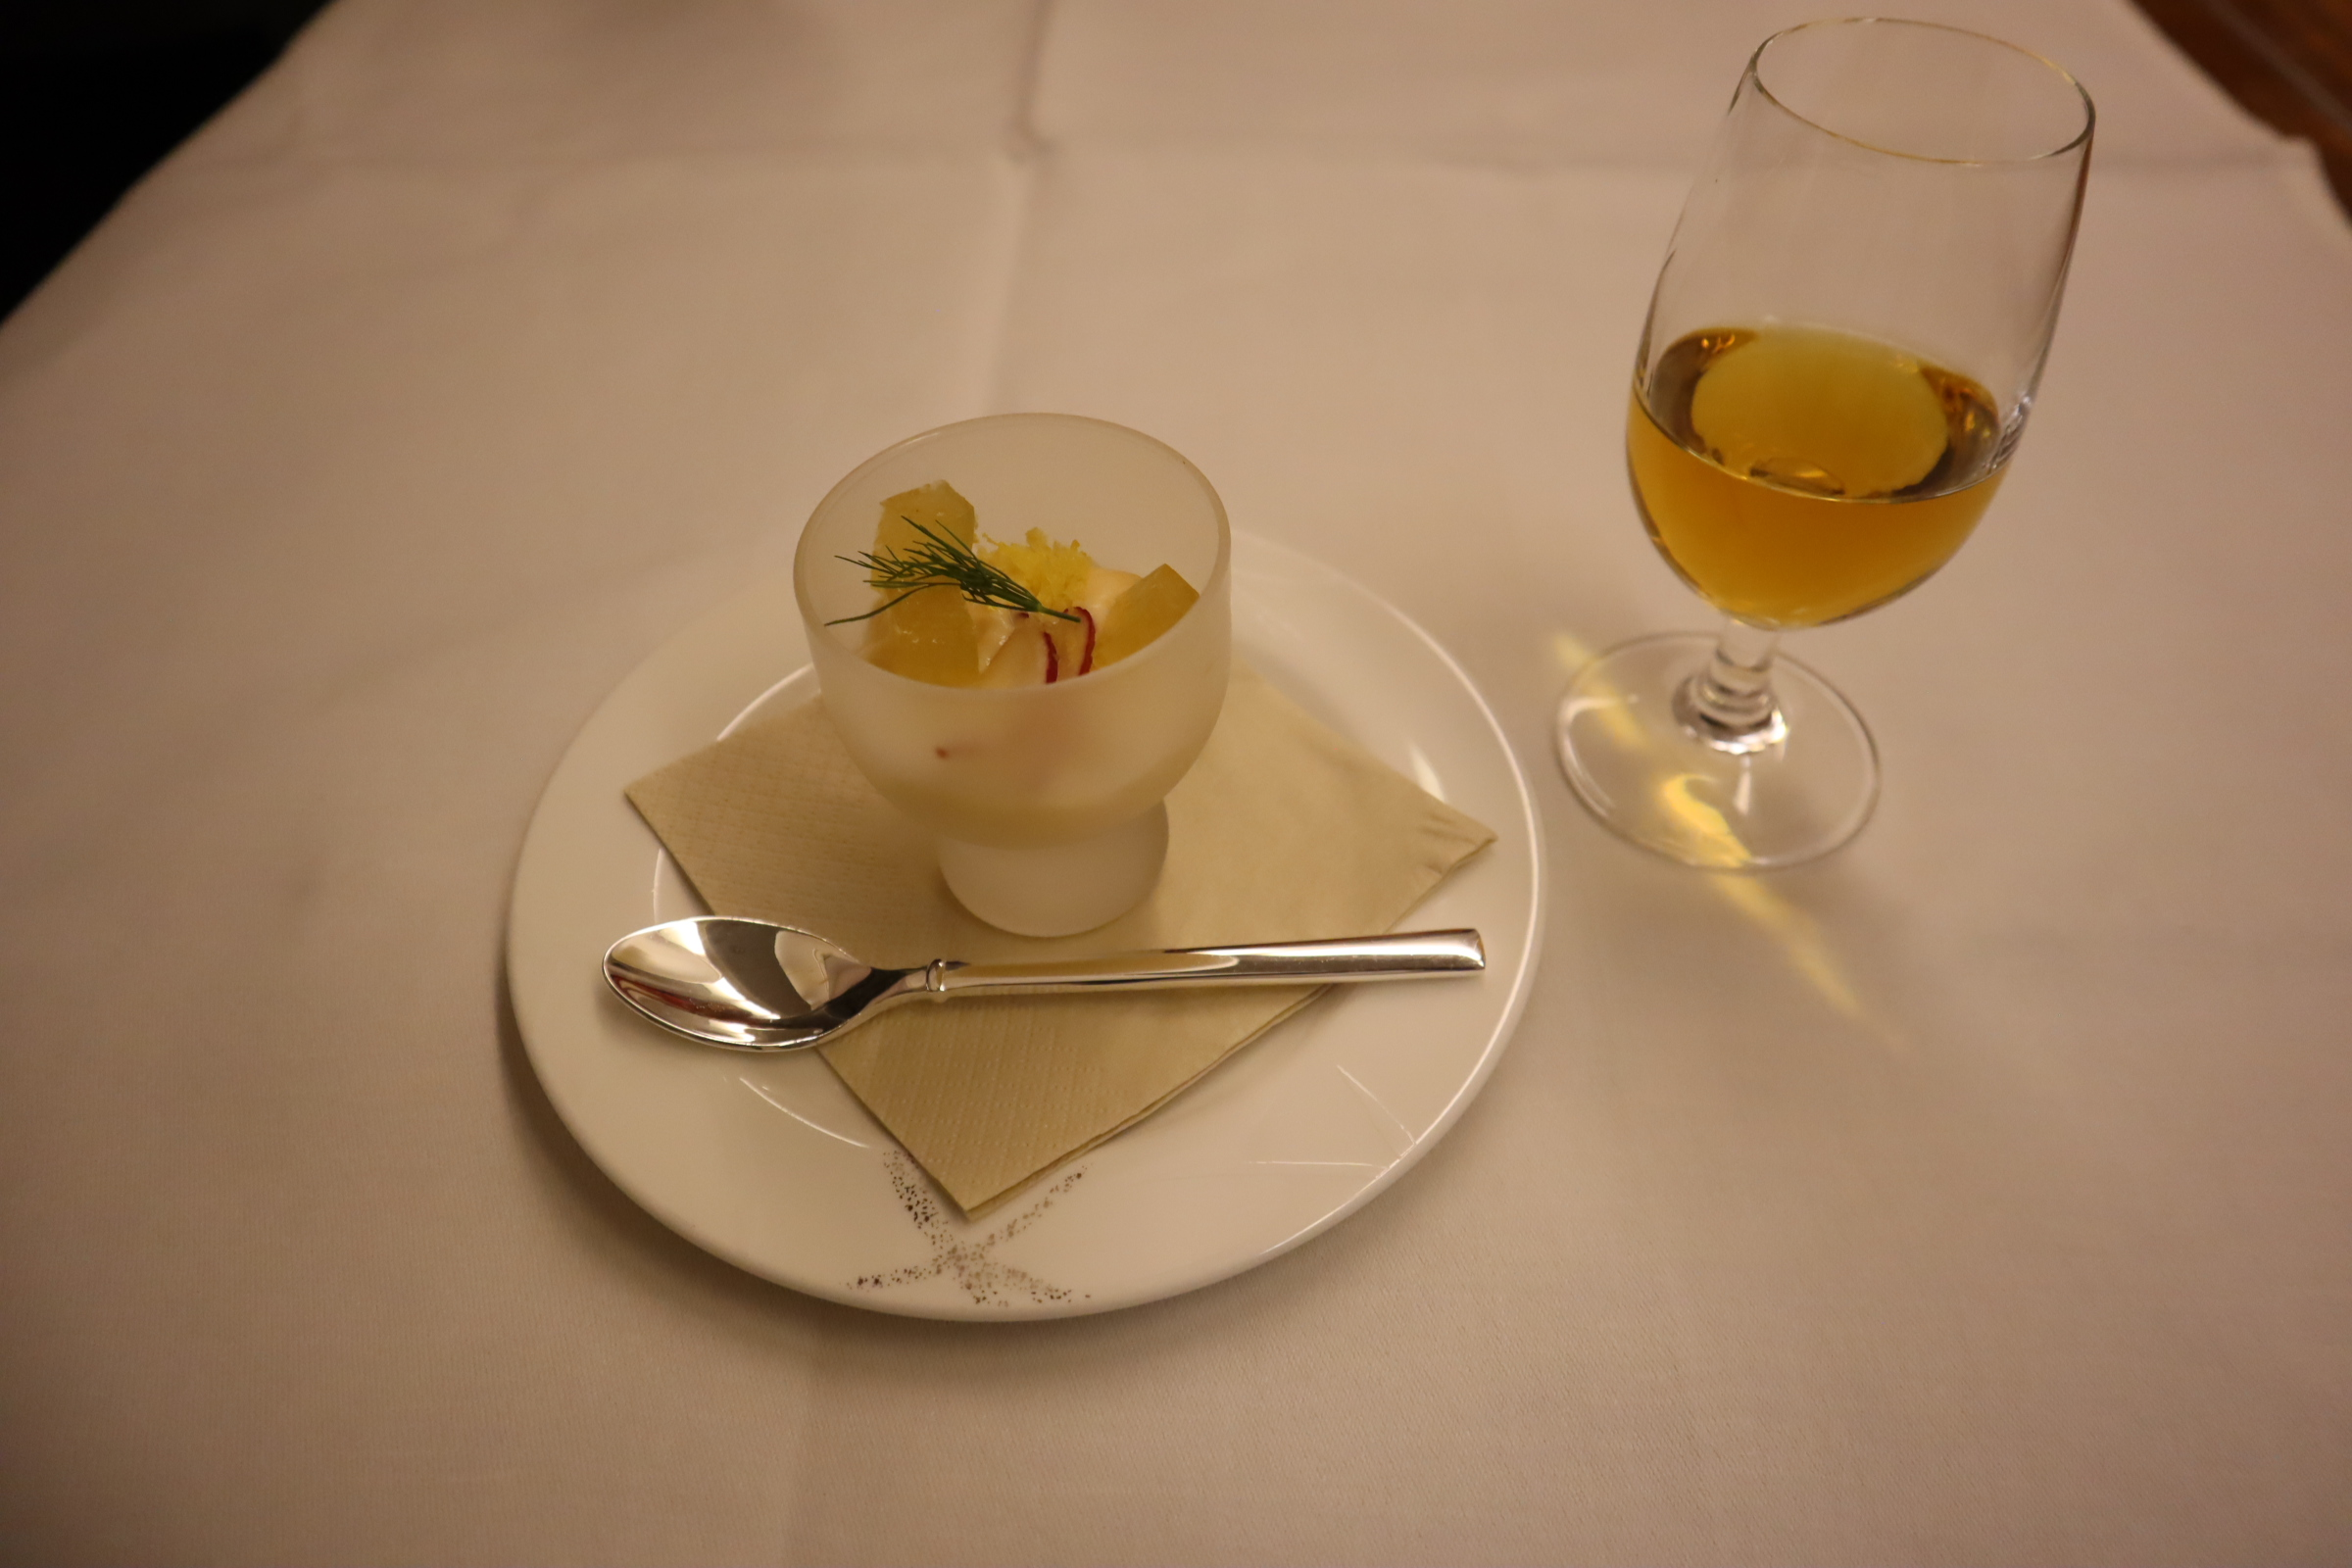 Cathay Pacific First Class – Amuse bouche and whiskey